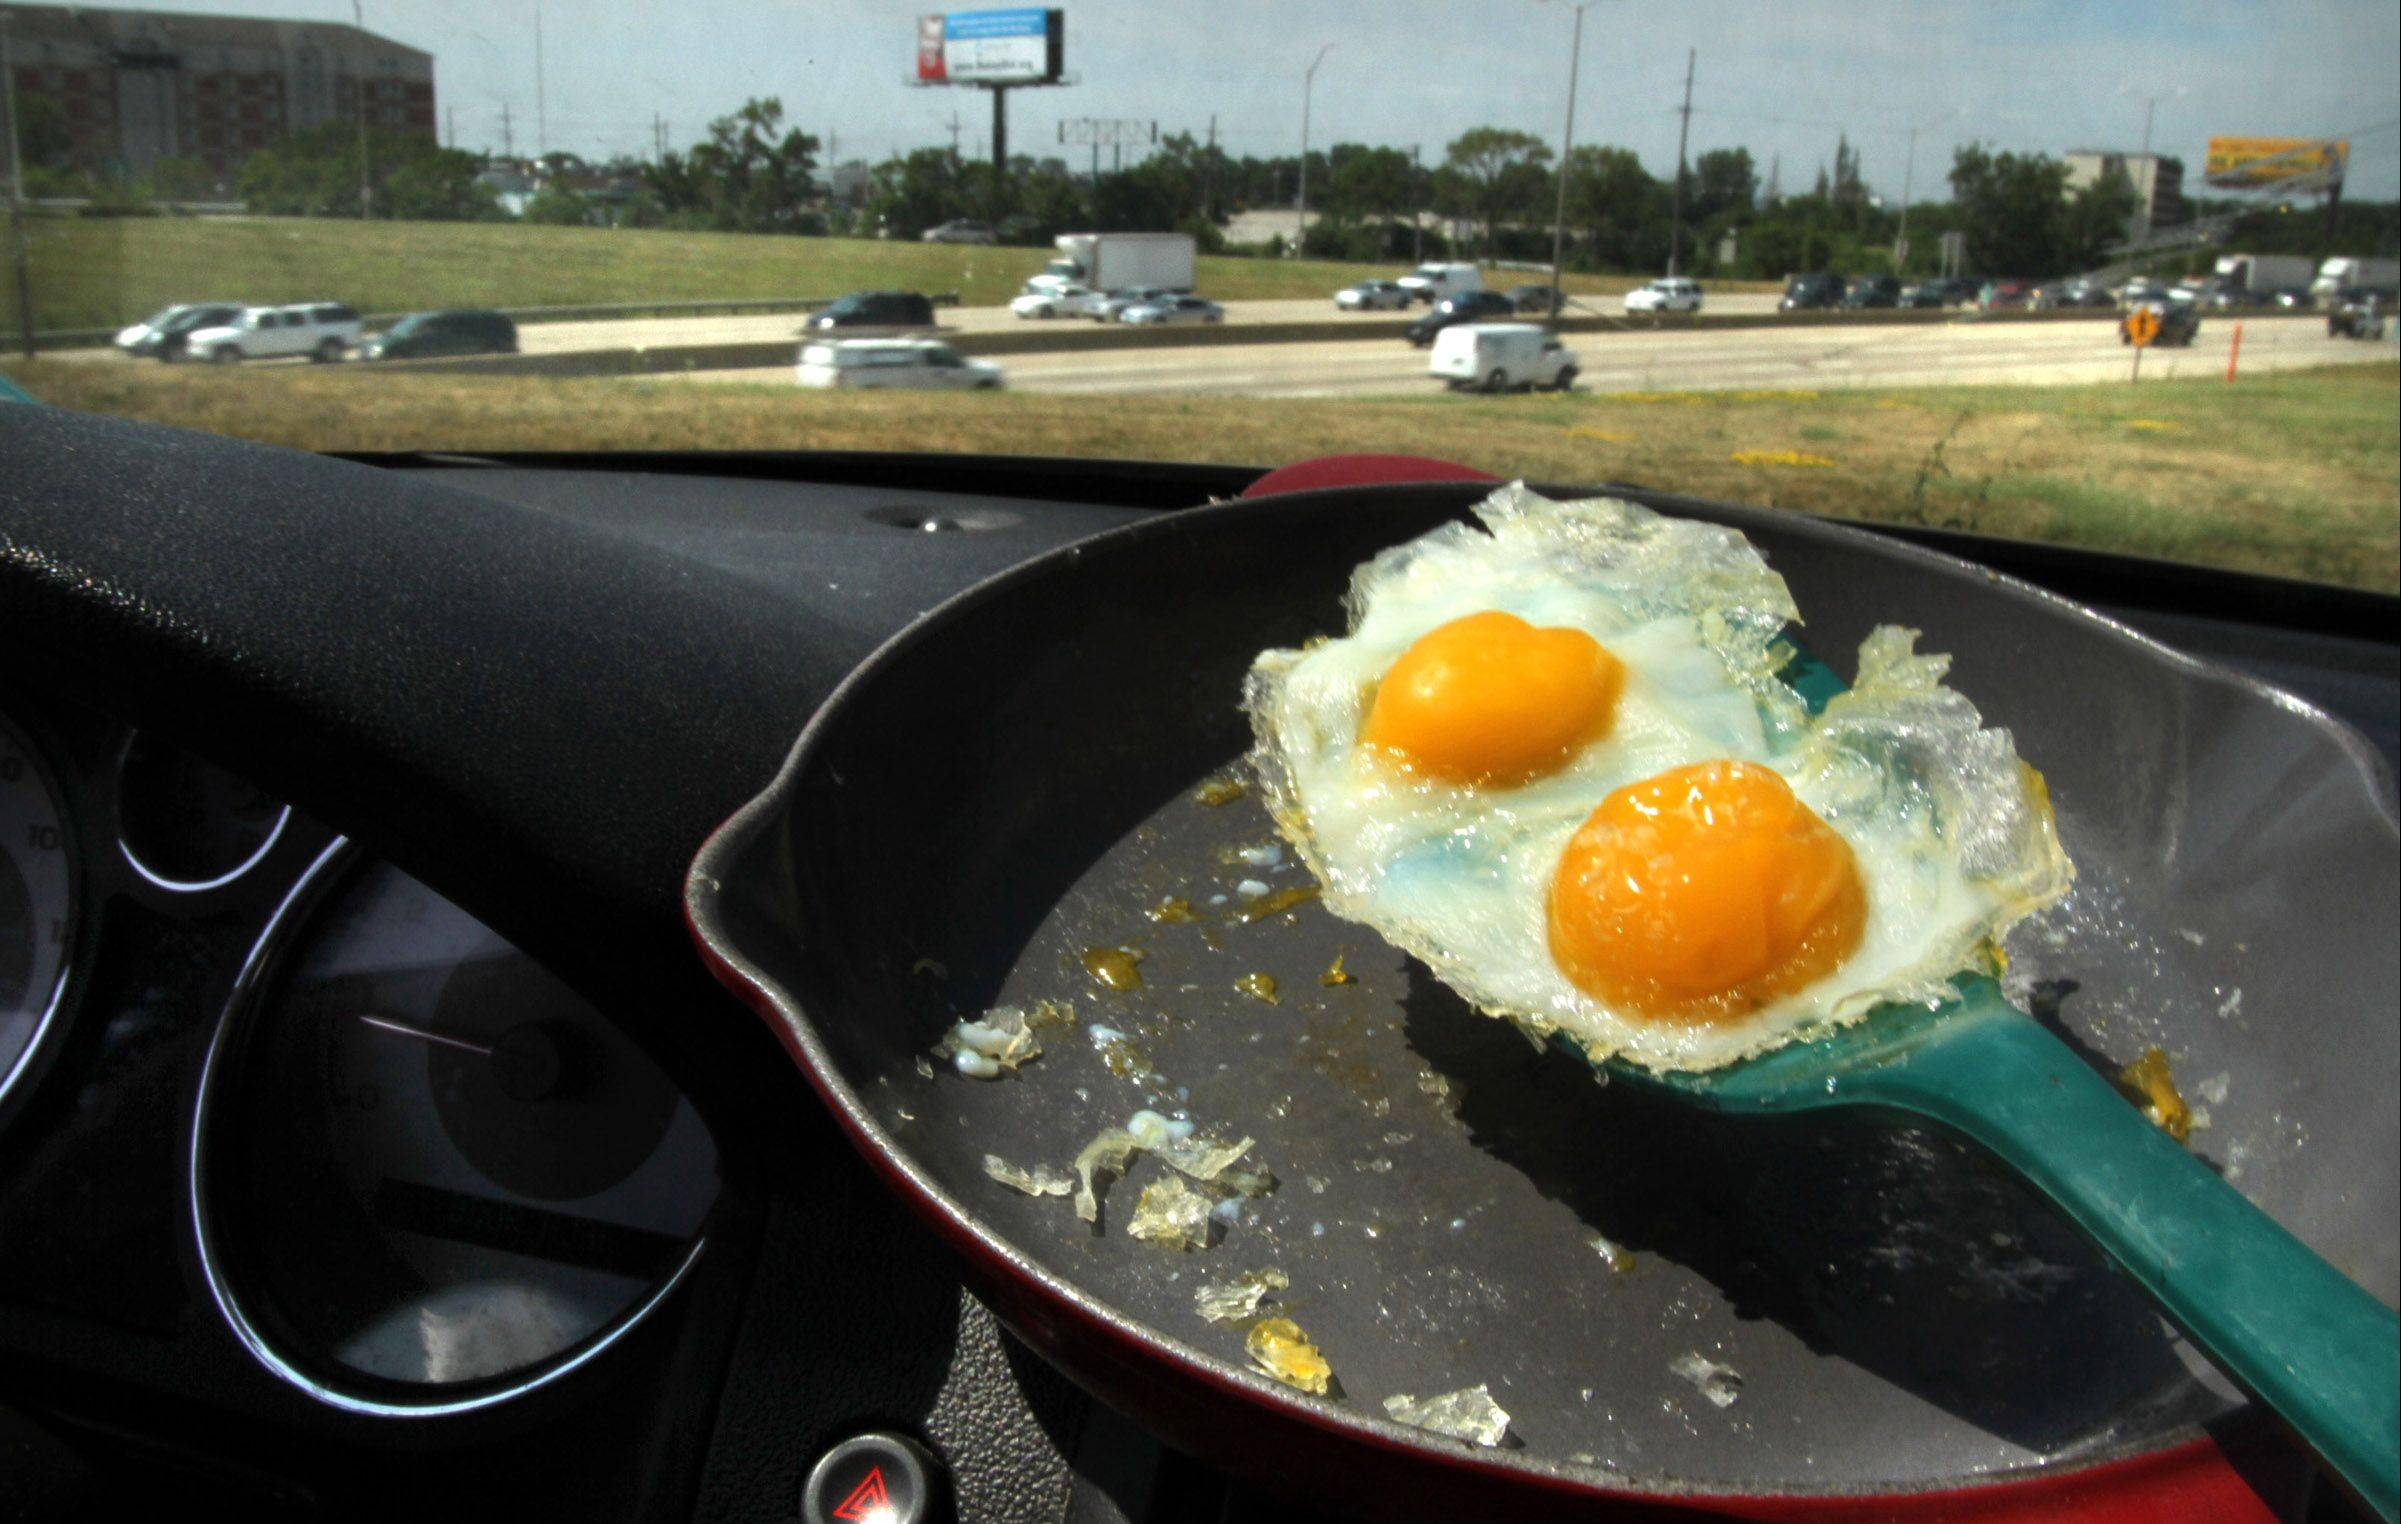 Daily Herald photographer George LeClaire took my ill-fated experiment of more than a decade ago to new heights by successfully frying an egg on the dashboard of his car.